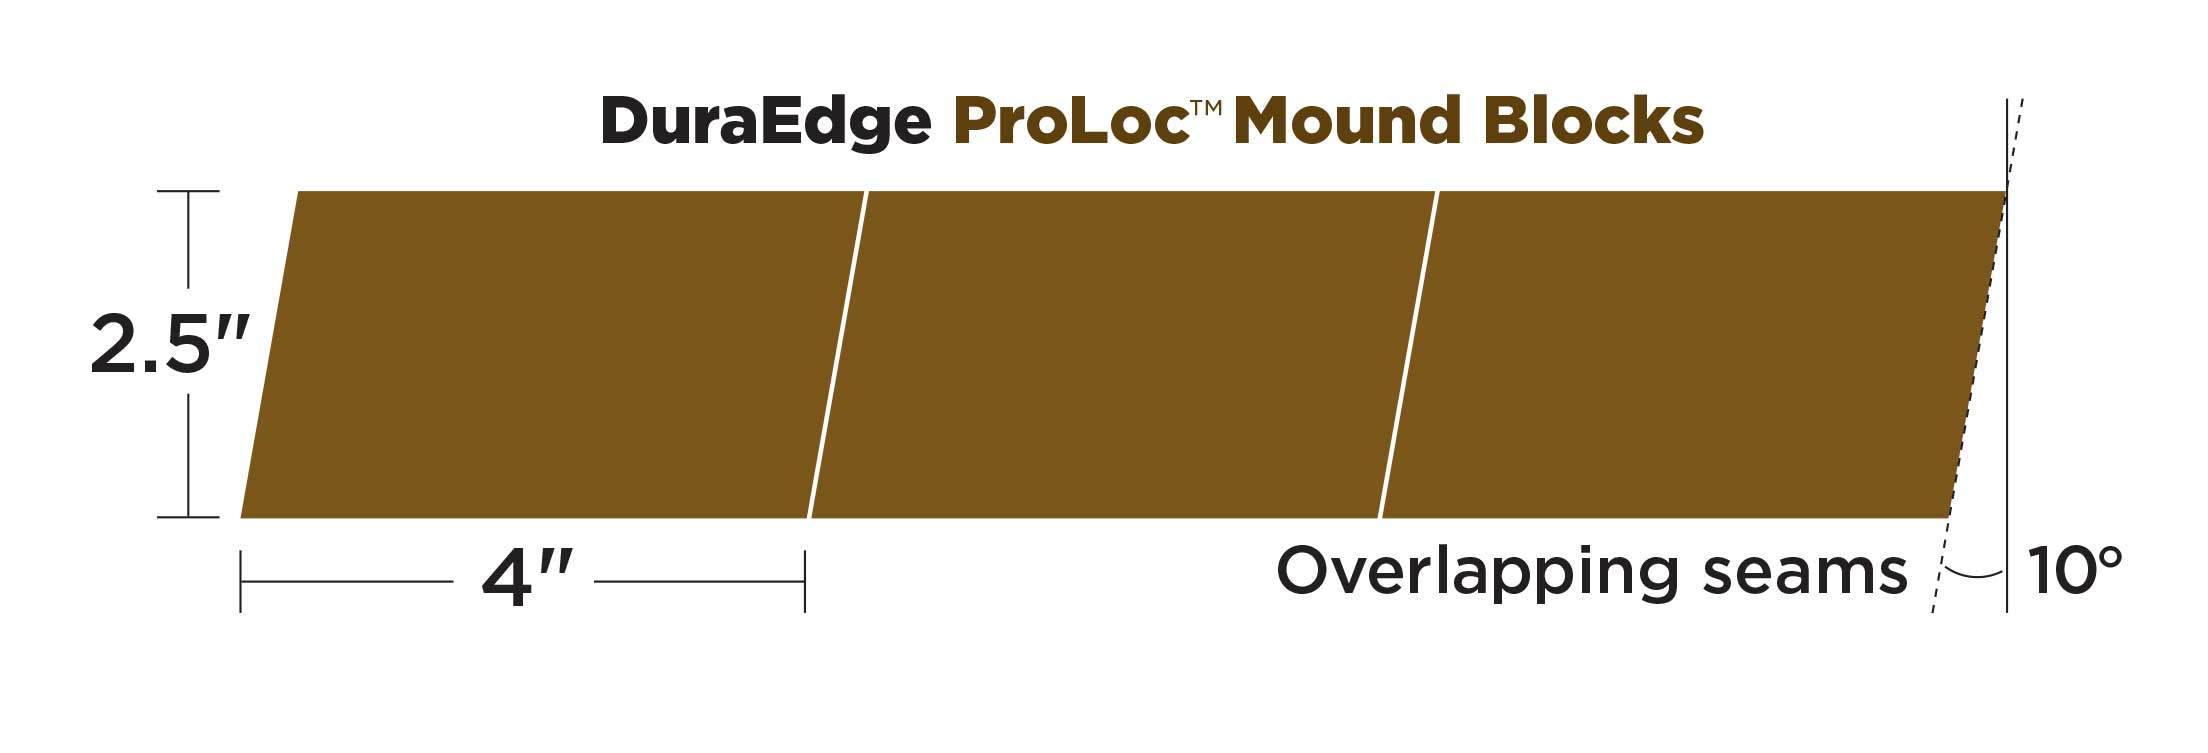 DuraEdge ProLoc